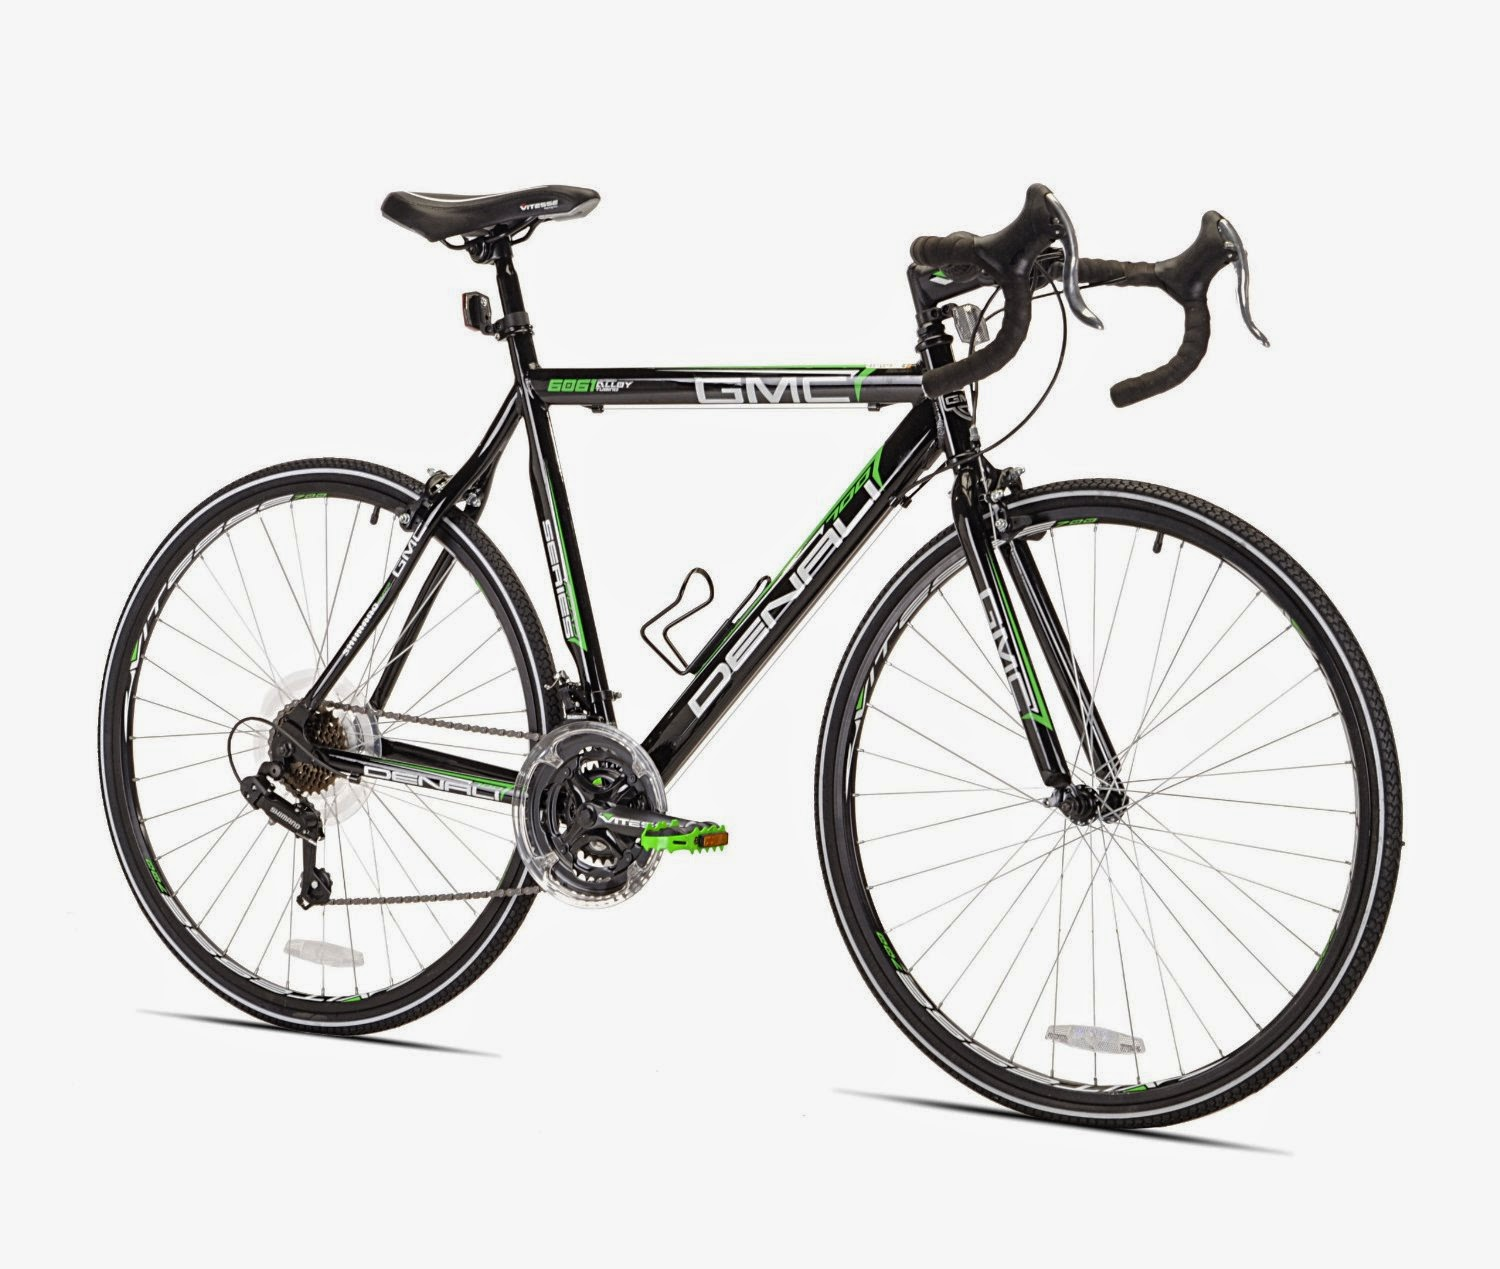 GMC Denali Road Bike, picture, review features & specifications